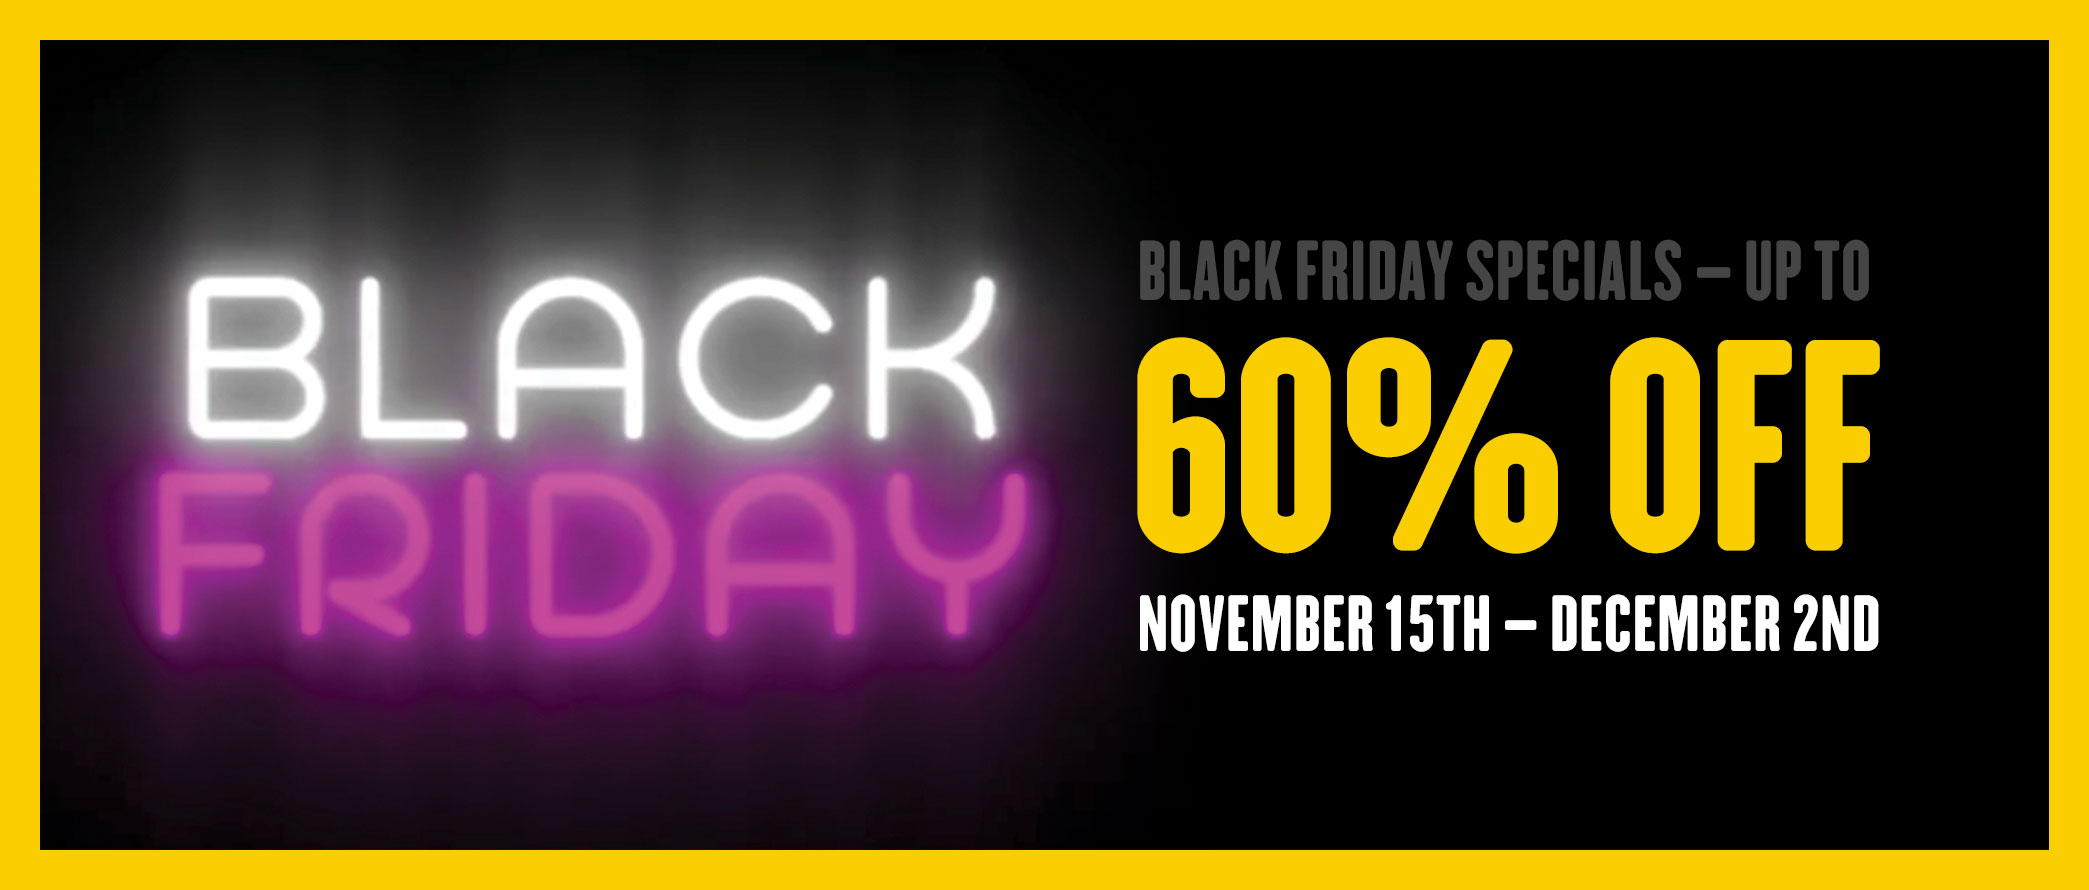 Black Friday Specials - Up to 60% OFF - See In Store for Details